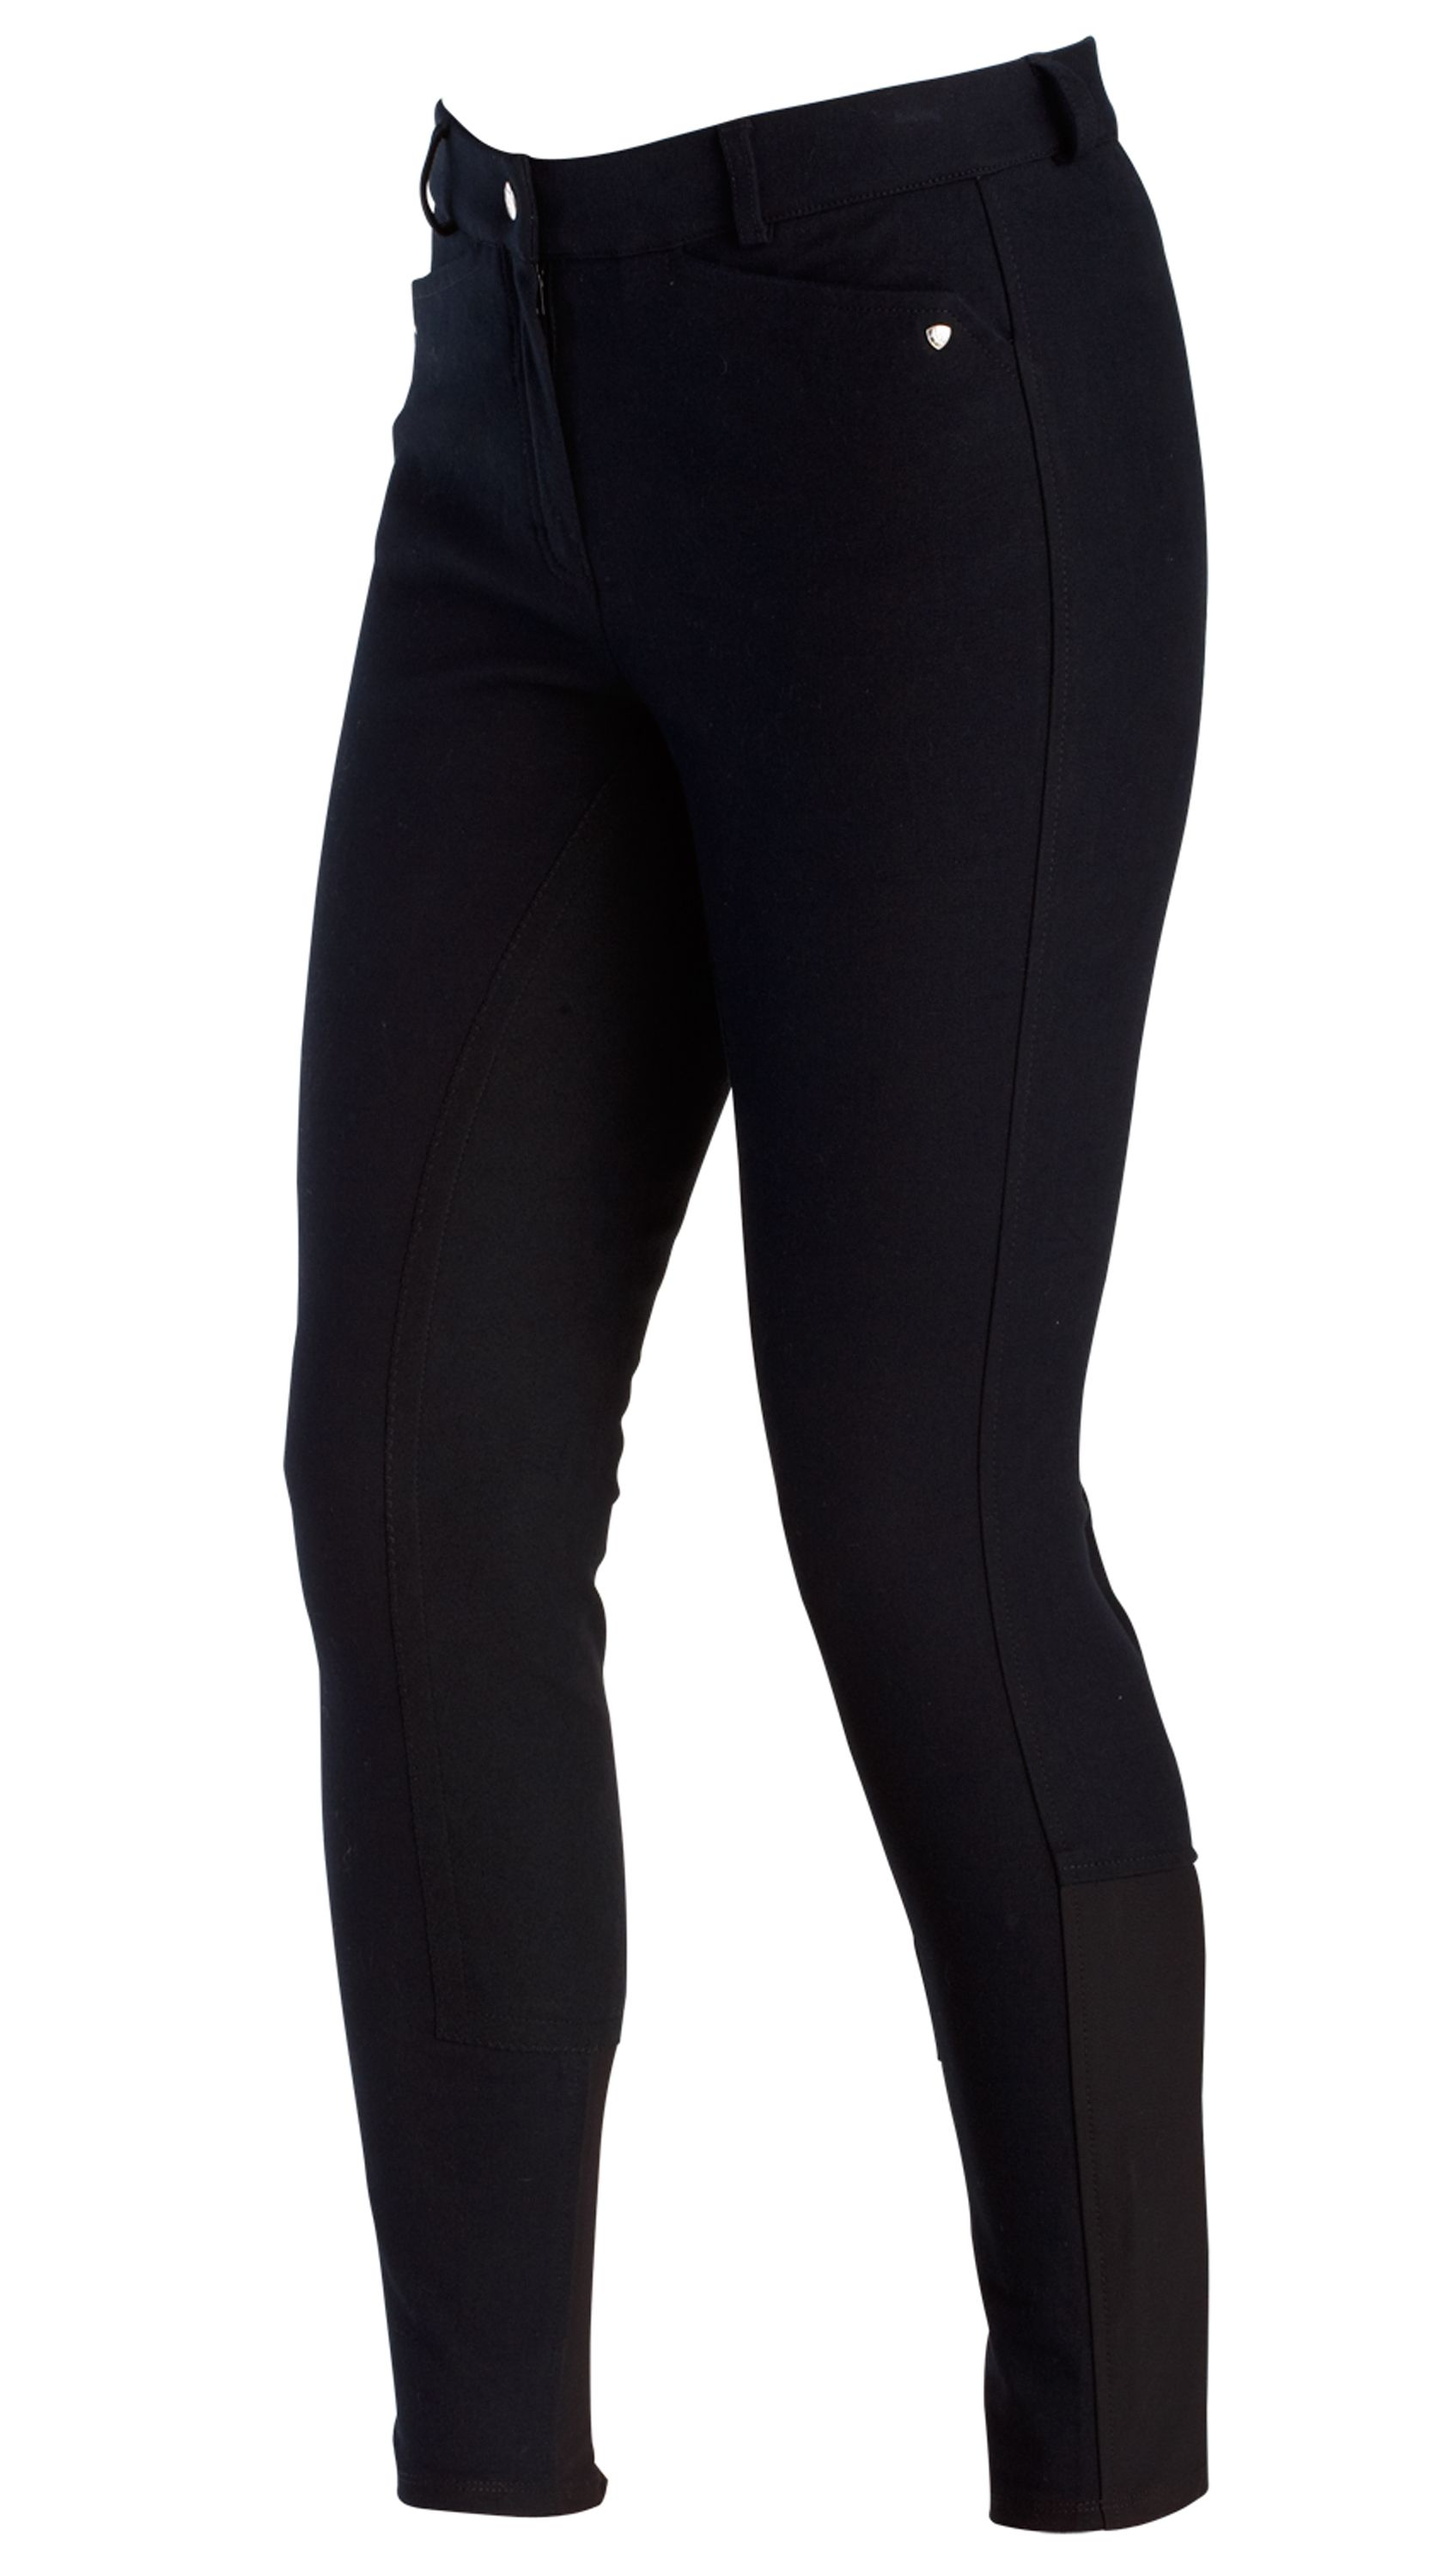 Ariat Ladies Heritage Full Seat Riding Breeches